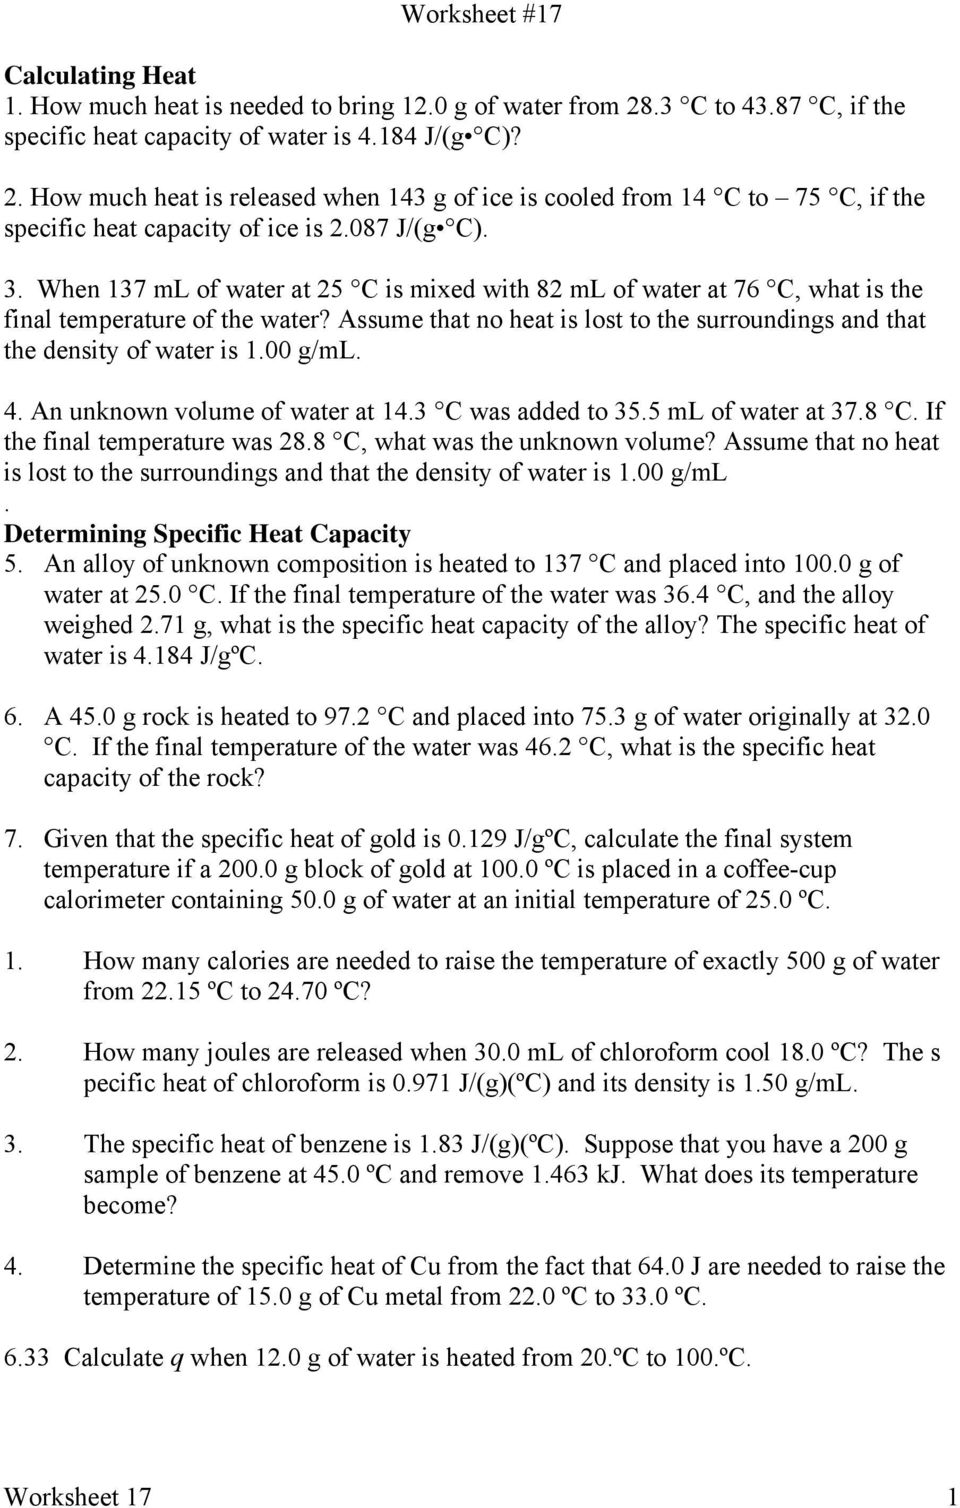 Worksheet How Much Heat Is Released When 143 G Of Ice Is Cooled